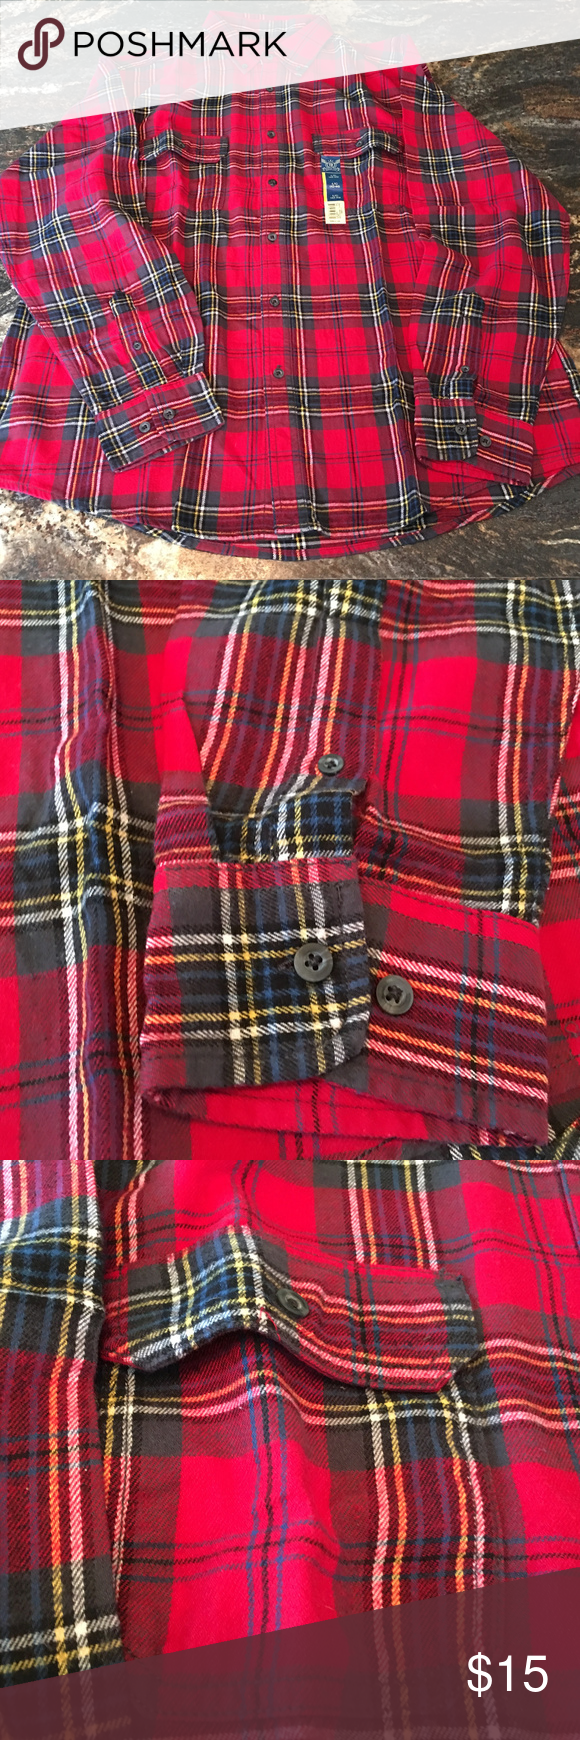 Flannel shirts yellow  Faded Glory Flannel Shirt Mens M Woven Cotton Plai Faded Glory